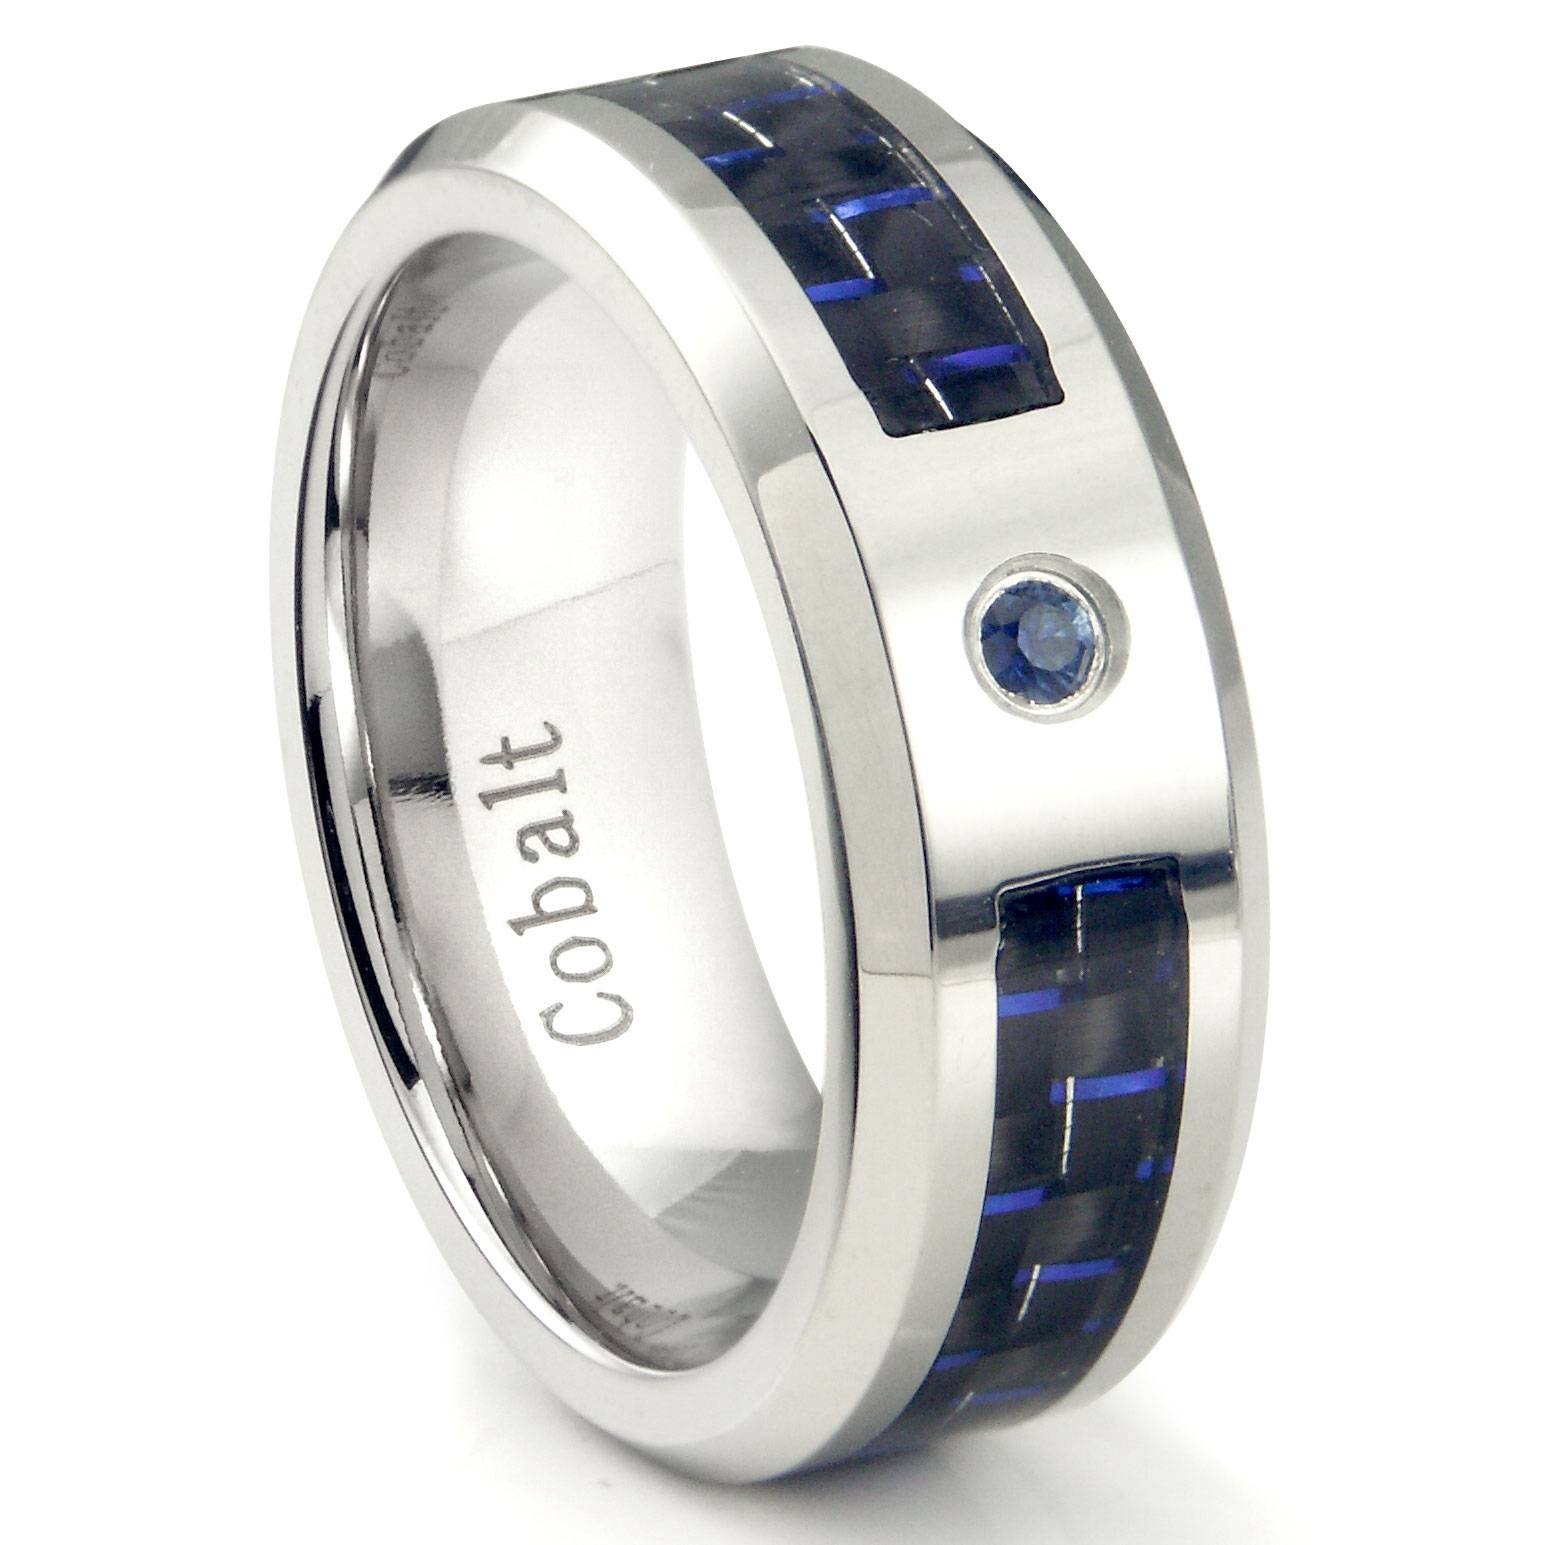 Cobalt Chrome 8mm Blue Sapphire & Blue Carbon Fiber Inlay Wedding Throughout Men's Wedding Bands With Blue Sapphire (View 7 of 15)